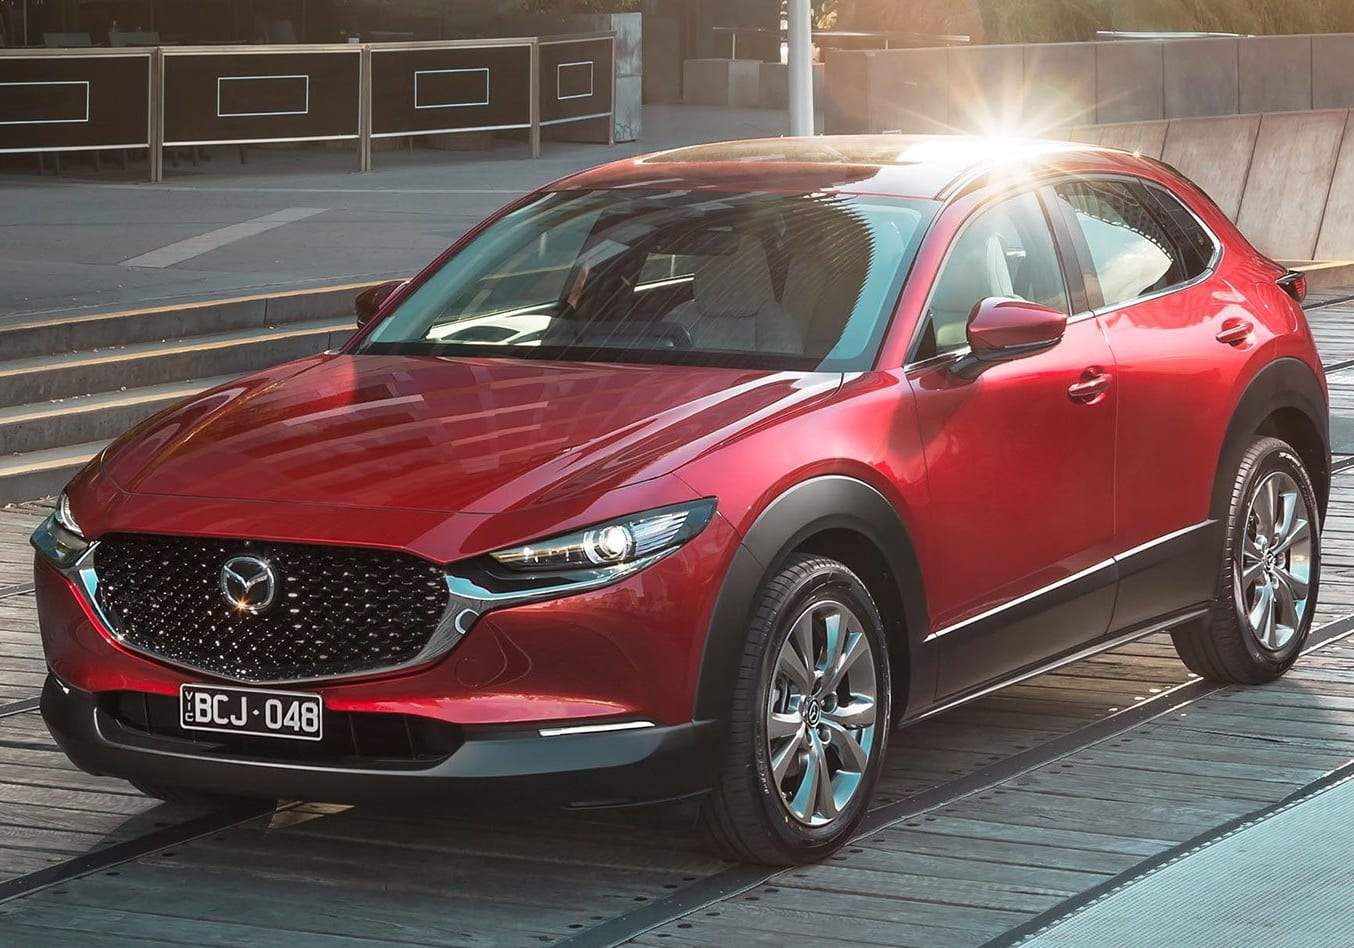 2020 Mazda CX-30 Australian details, price and gallery